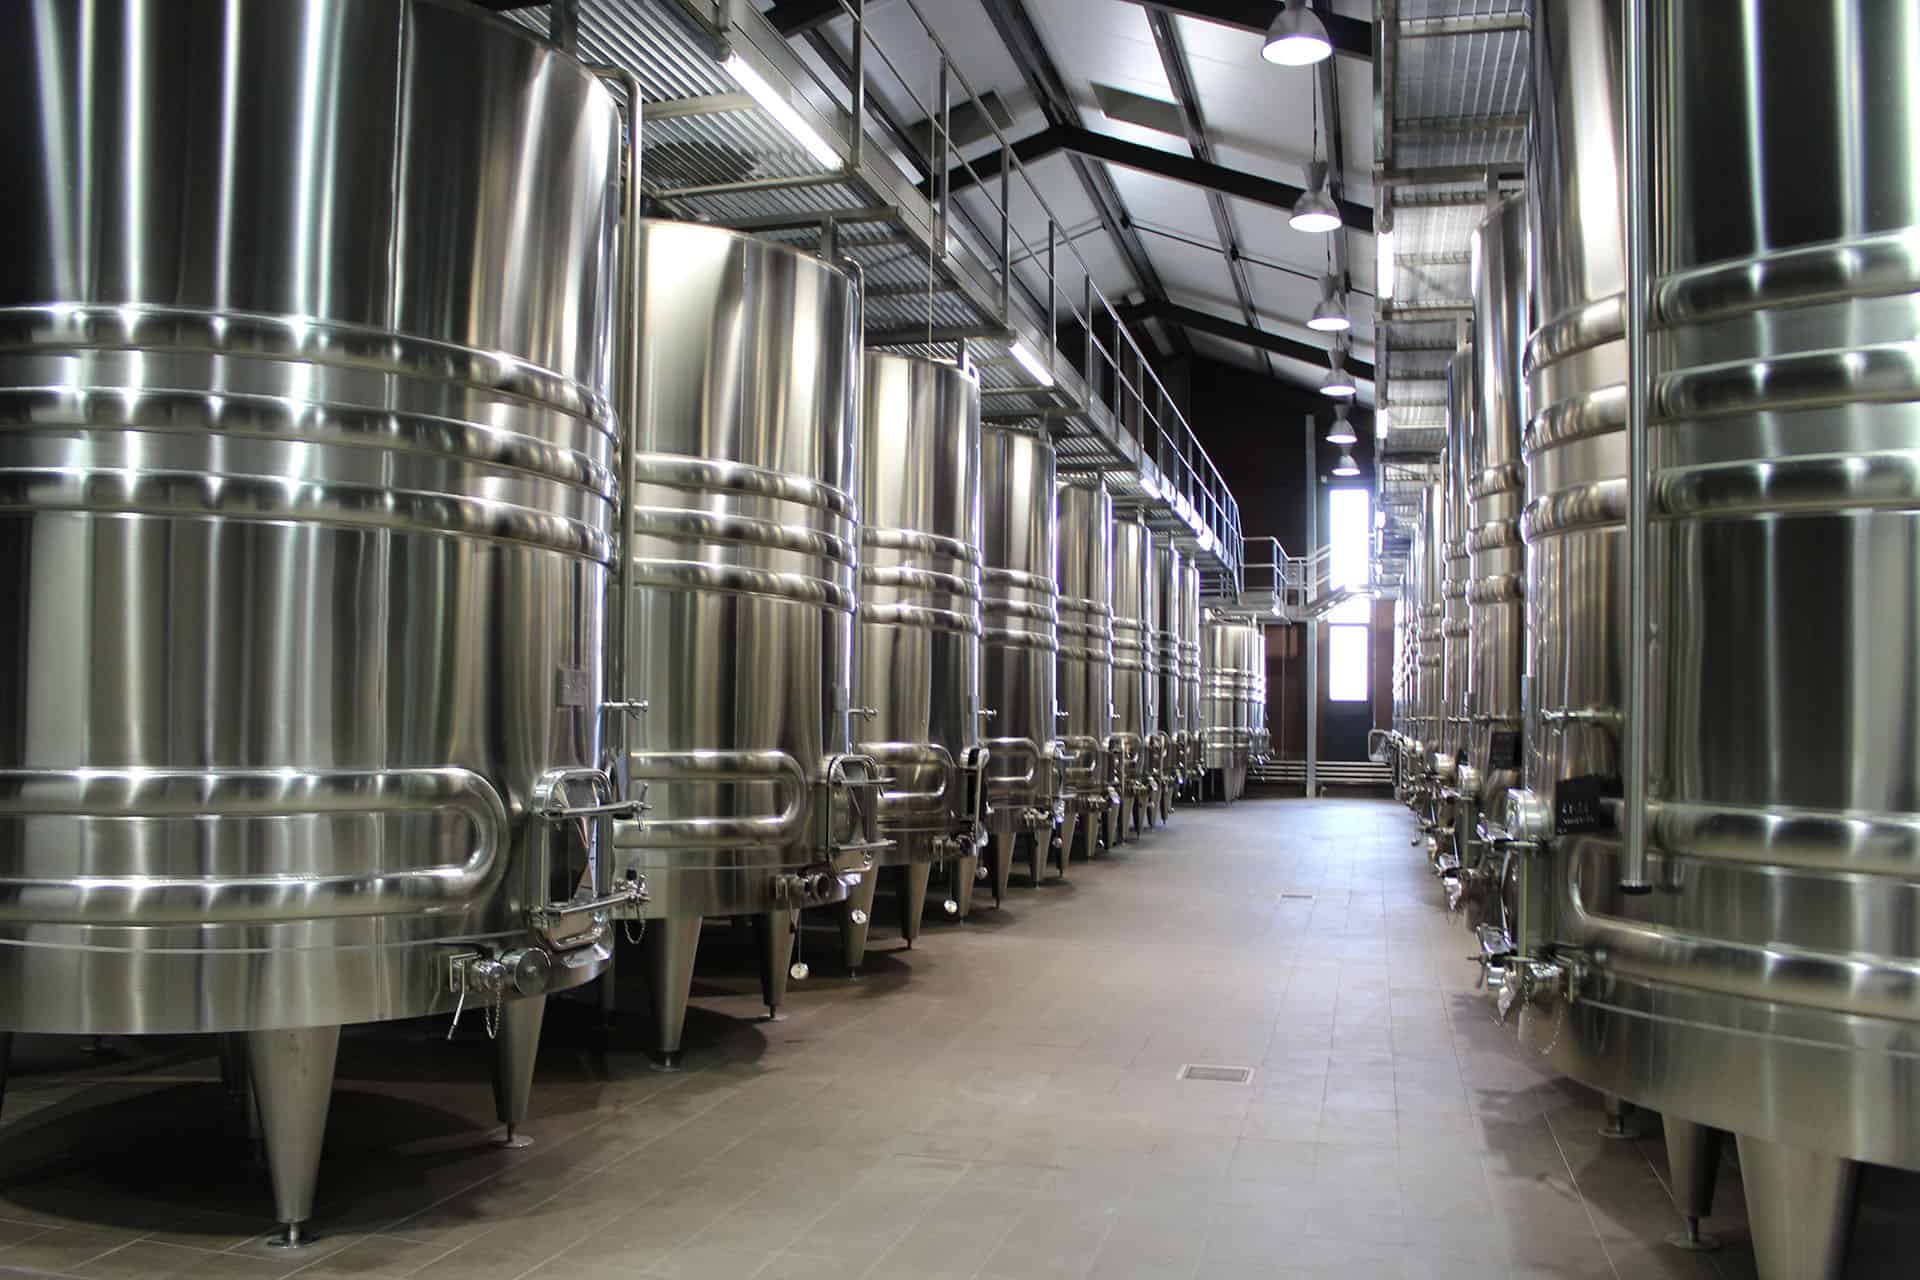 CF-Stainless-Steel-Tanks